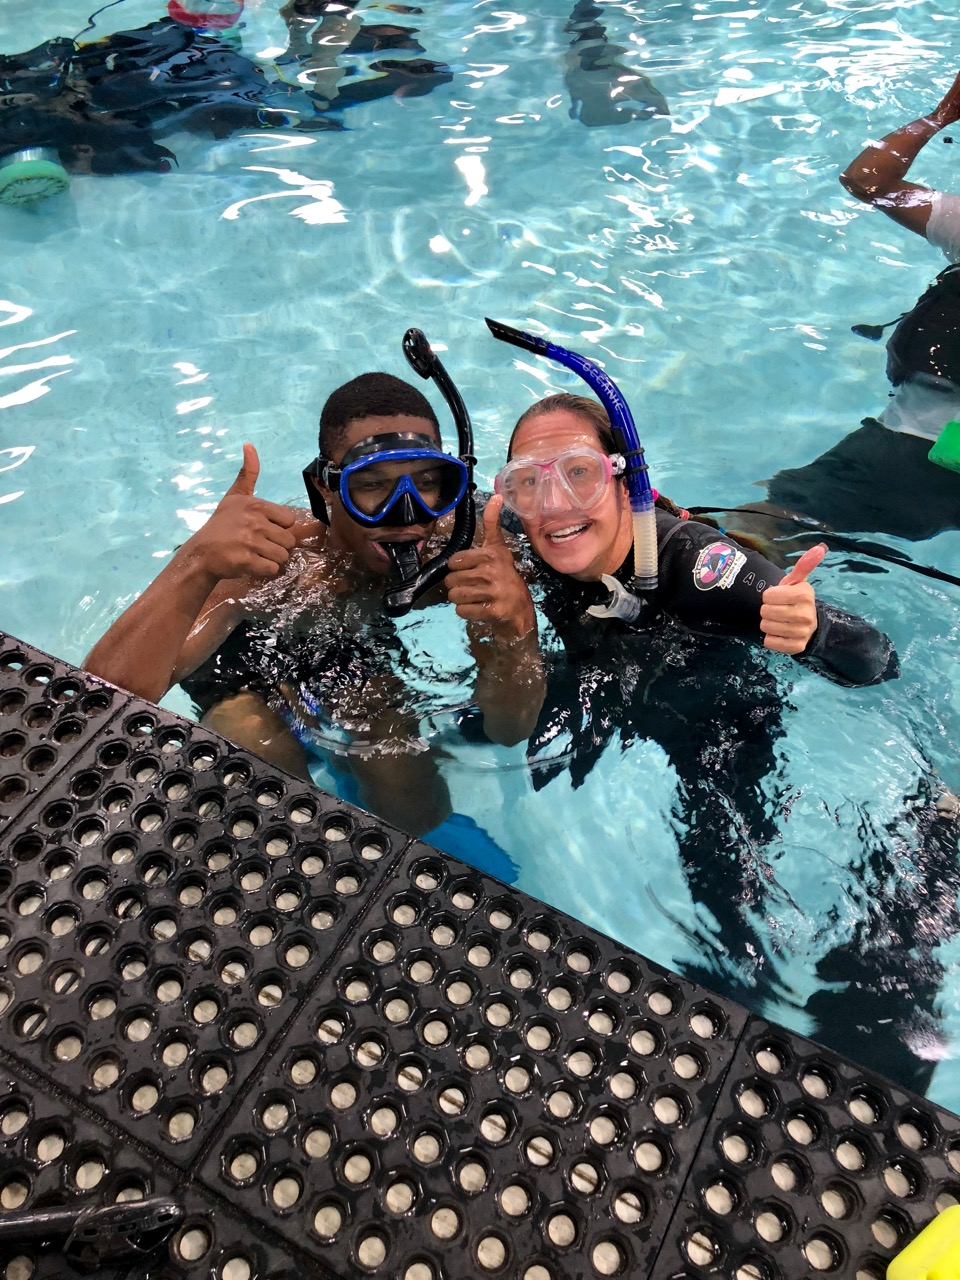 A young man in diving mask and snorkel gives the thumbs up after surfacing with his instructor